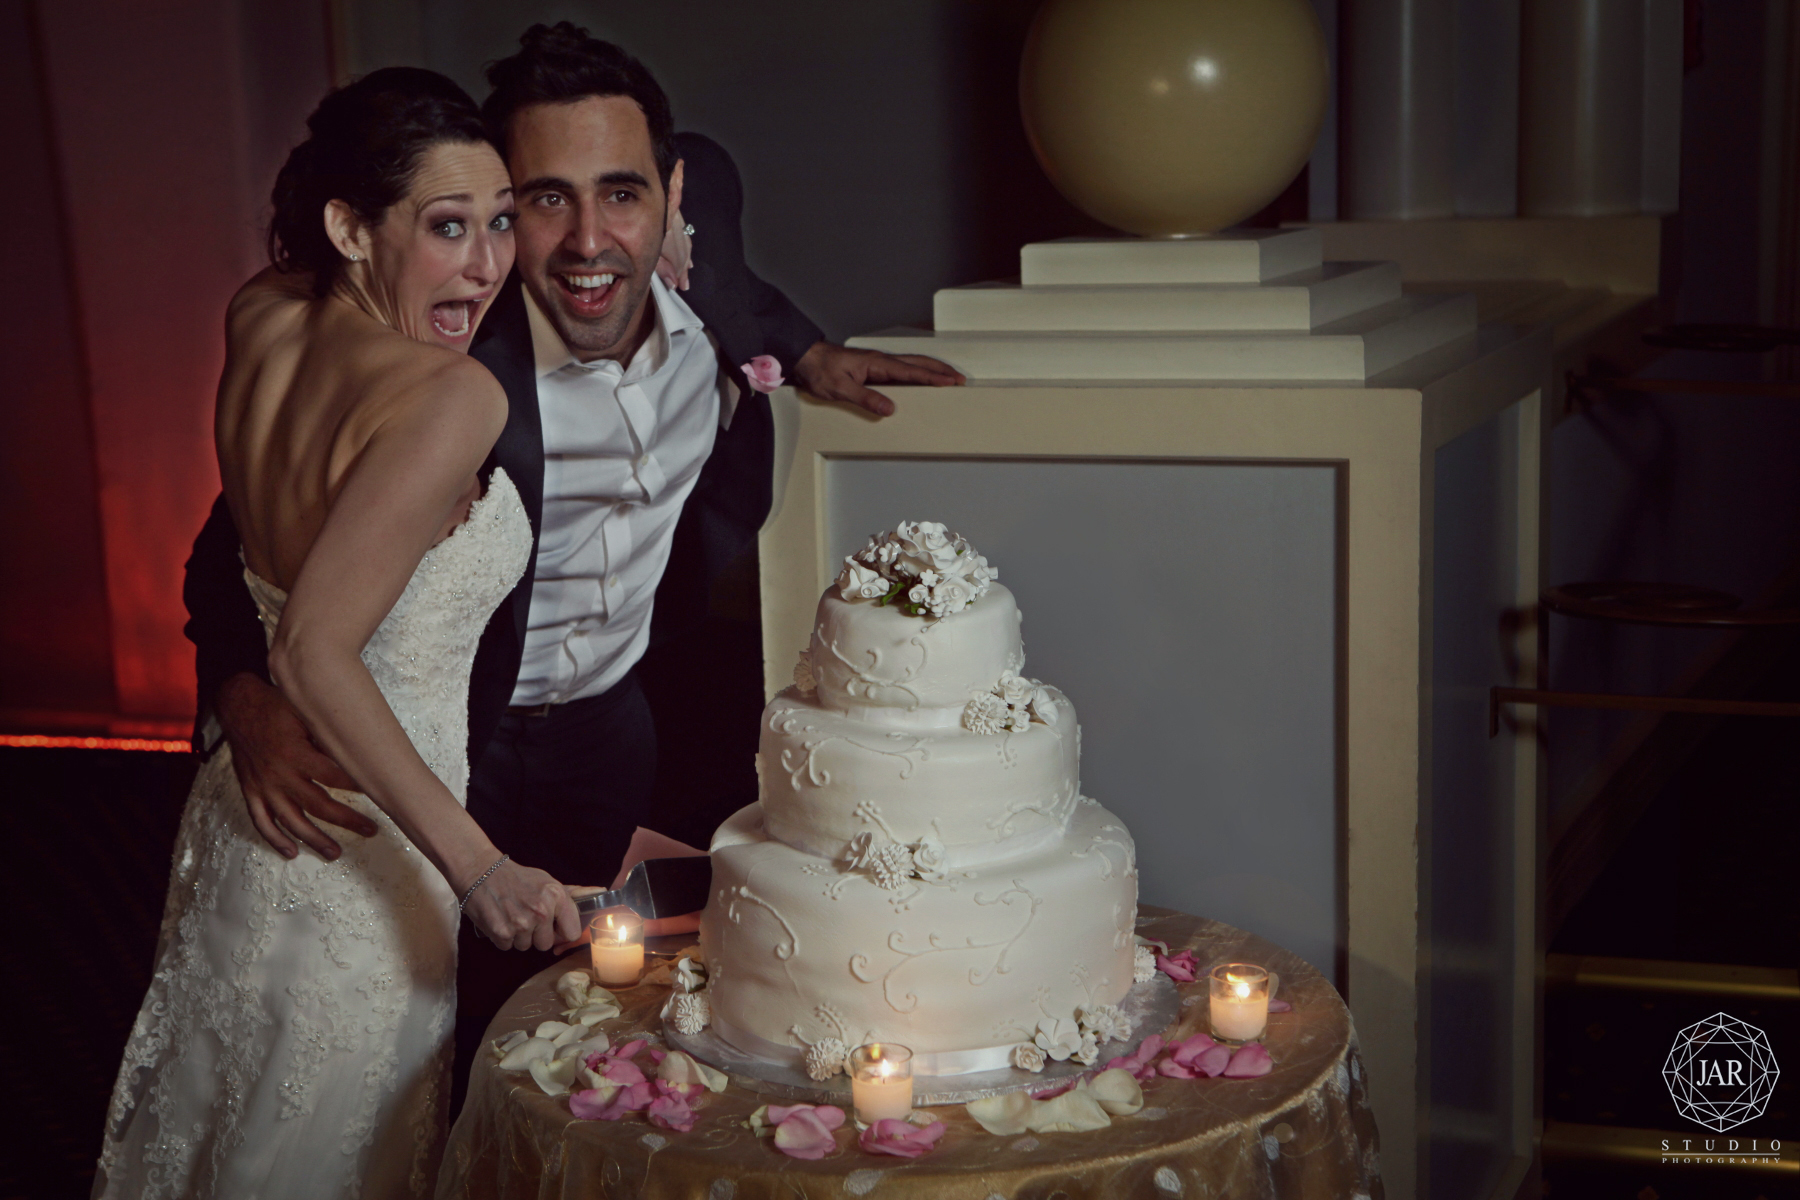 36-orlando-jewish-wedding-cake-kosher-jarstudio-photography.JPG